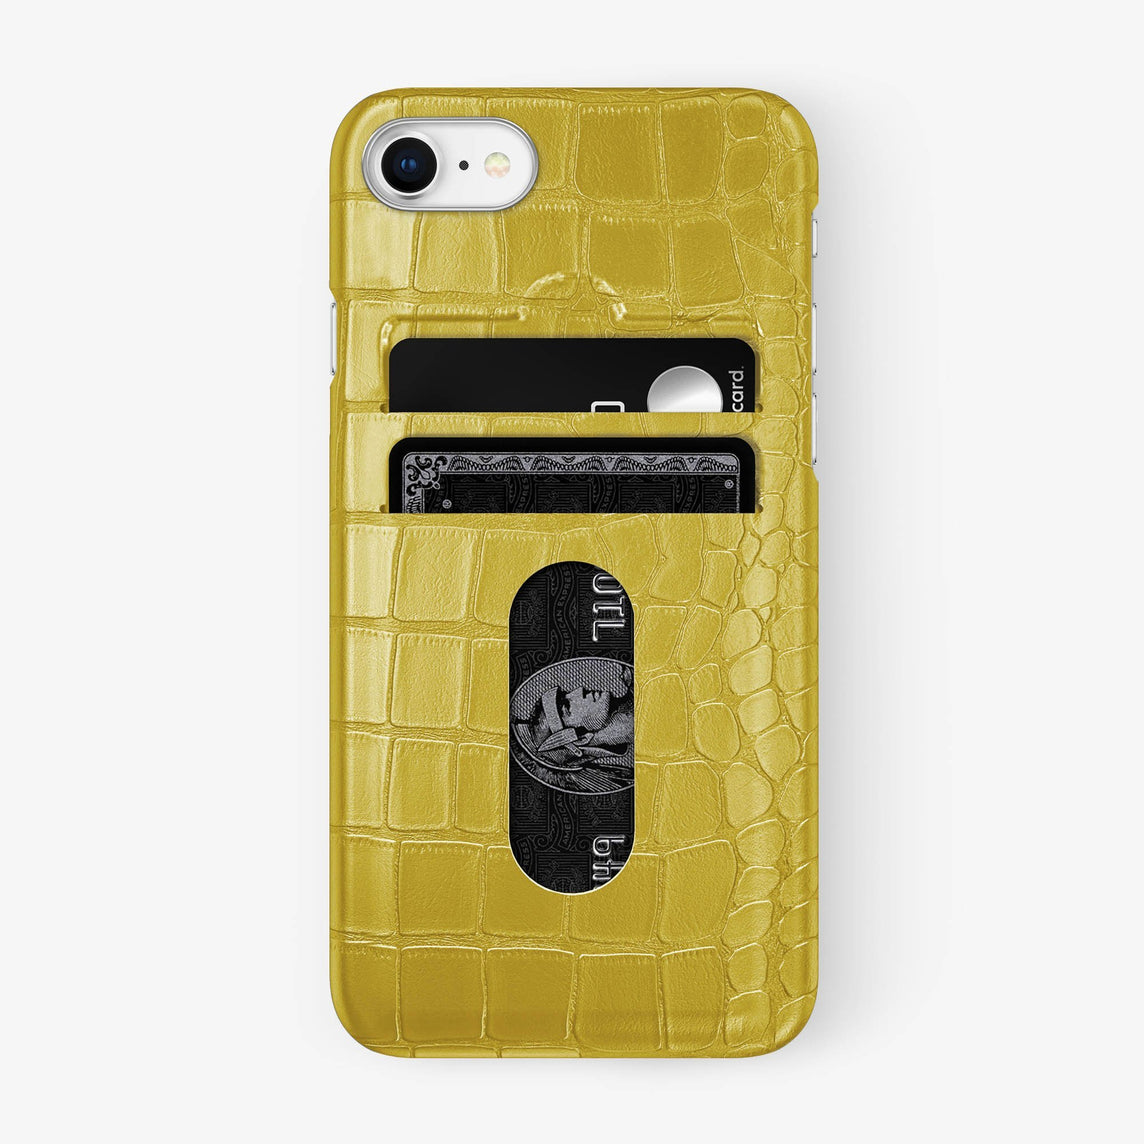 Alligator Card Holder Case iPhone 7/8 | Yellow - Stainless Steel